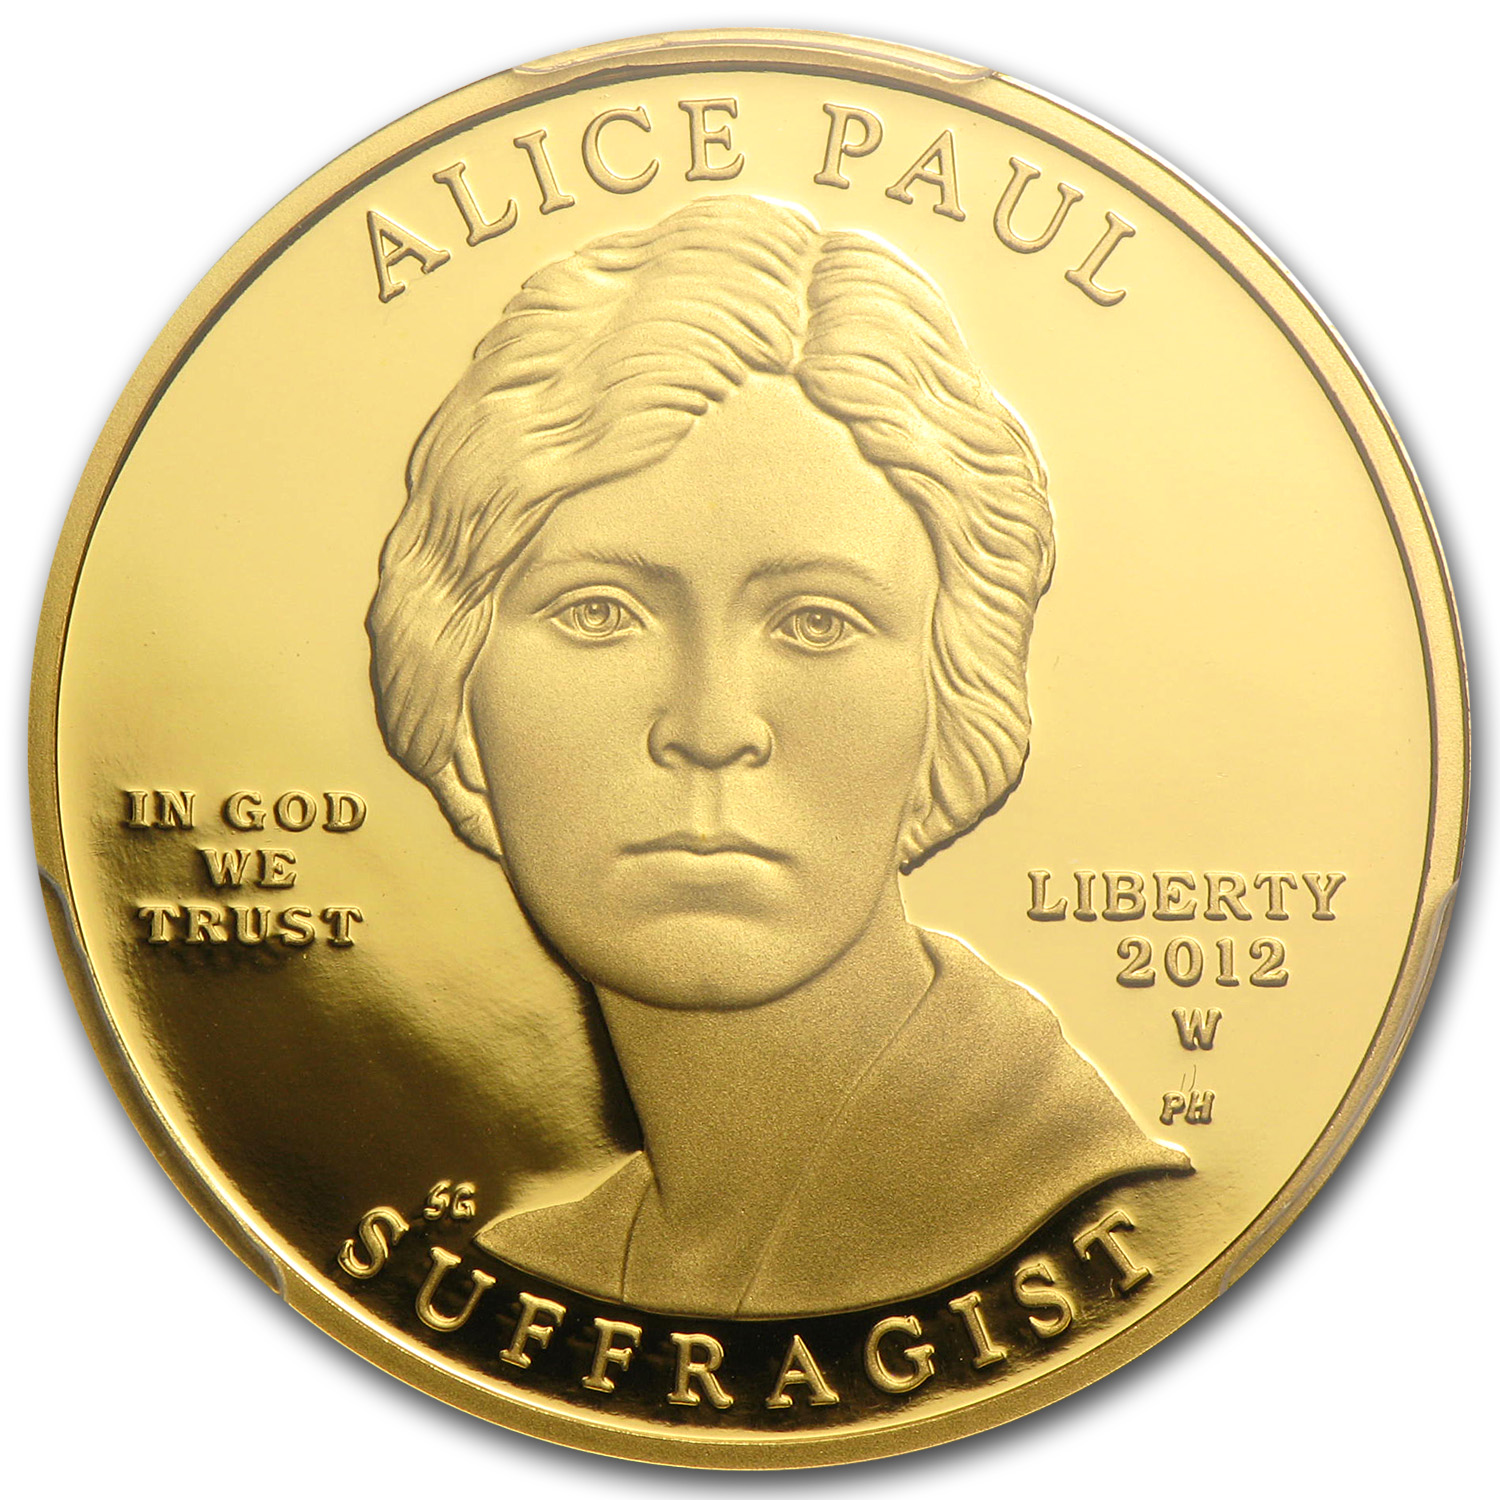 2012-W 1/2 oz Proof Gold Alice Paul PR-70 PCGS